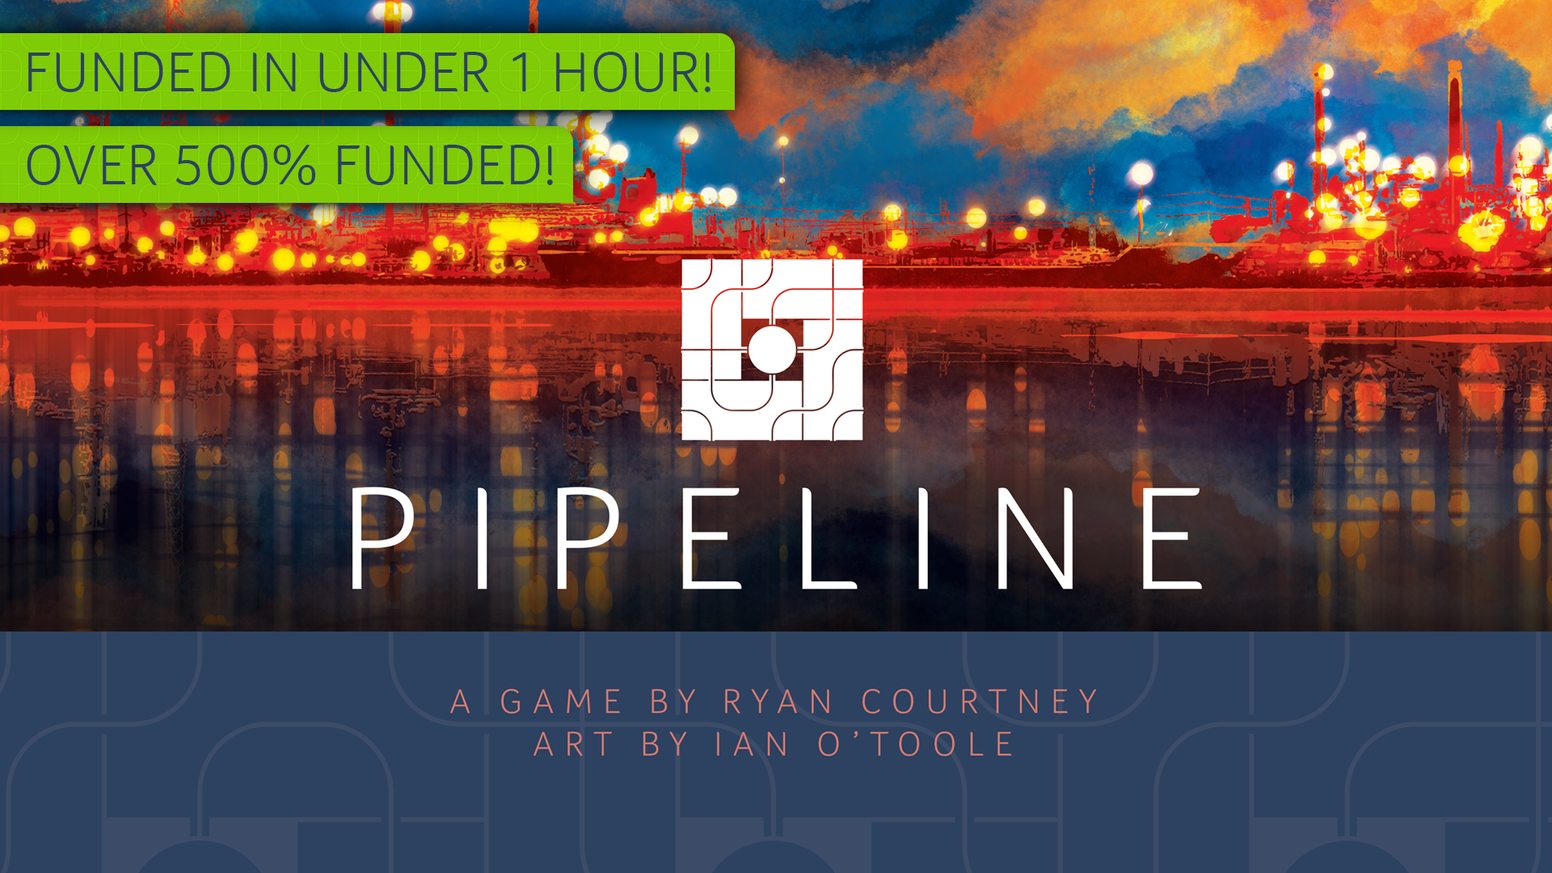 Capstone Games presents Pipeline, an economic spatial-awareness strategy game from designer Ryan Courtney with artwork by Ian O'Toole